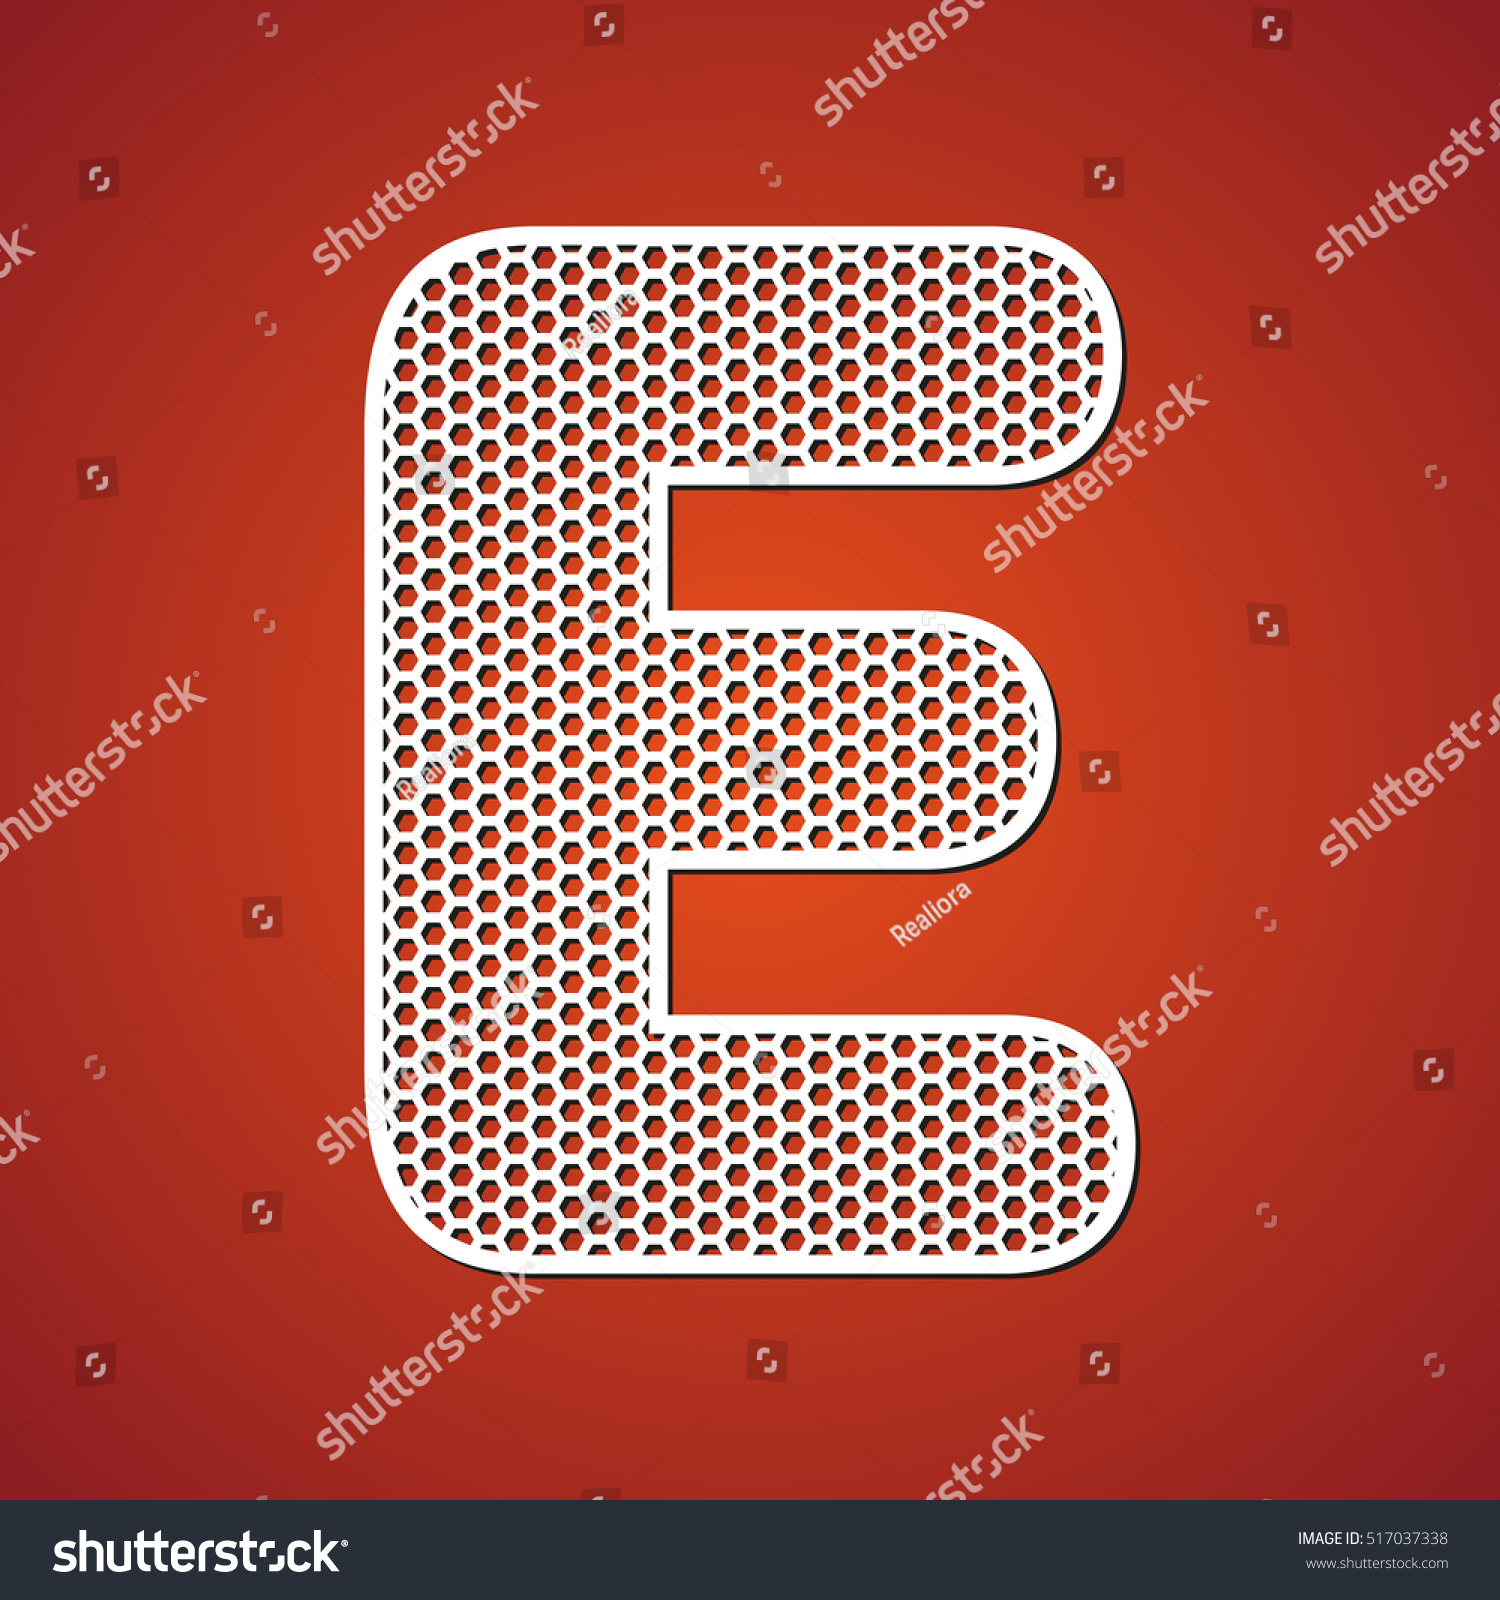 Laser cutting template alphabet letter e stock vector 517037338 laser cutting template the alphabet letter e for laser cutting vector illustration can spiritdancerdesigns Image collections